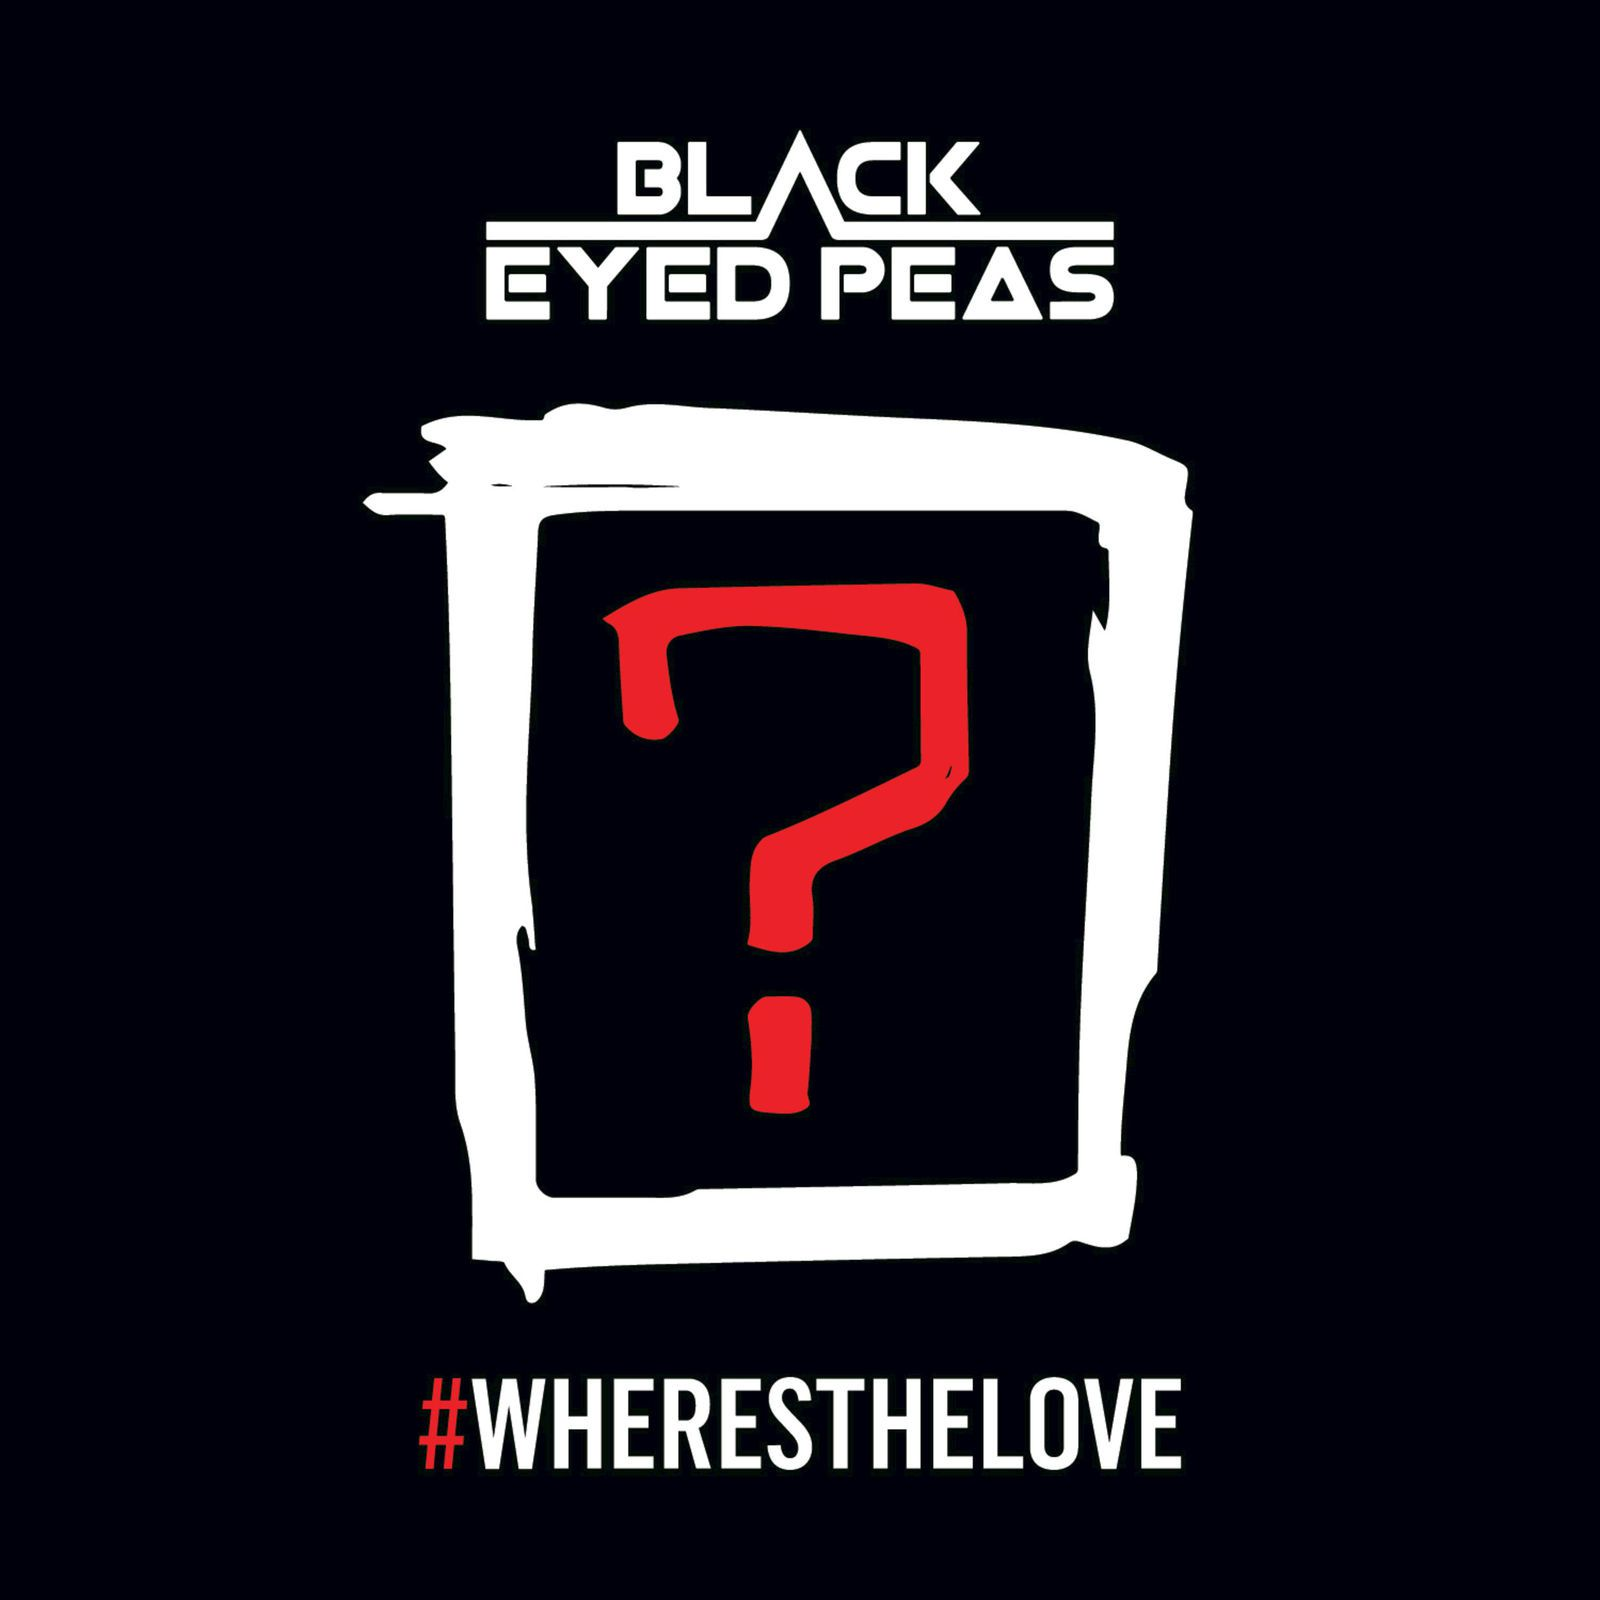 New : Black Eyed Peas Feat. The World - #WHERESTHELOVE